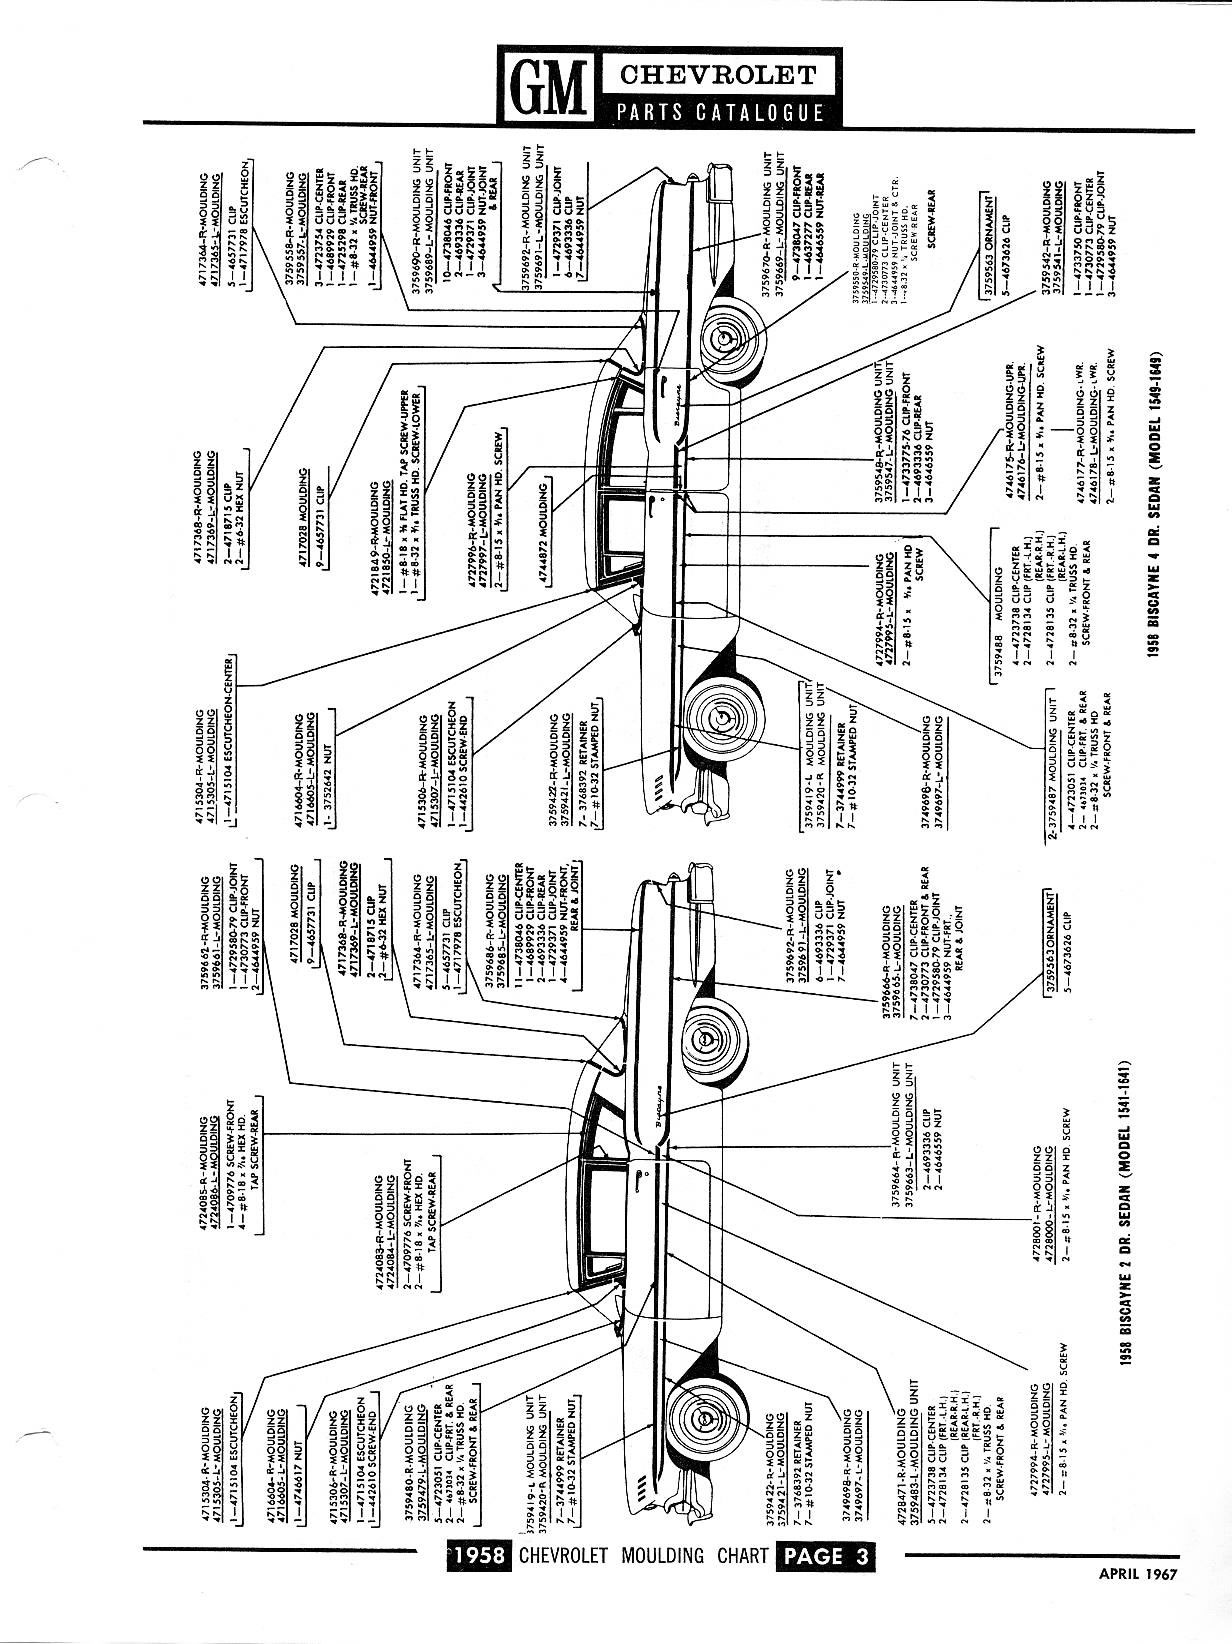 1970 chevy c10 fuse box diagram further 1964 chevy impala steering